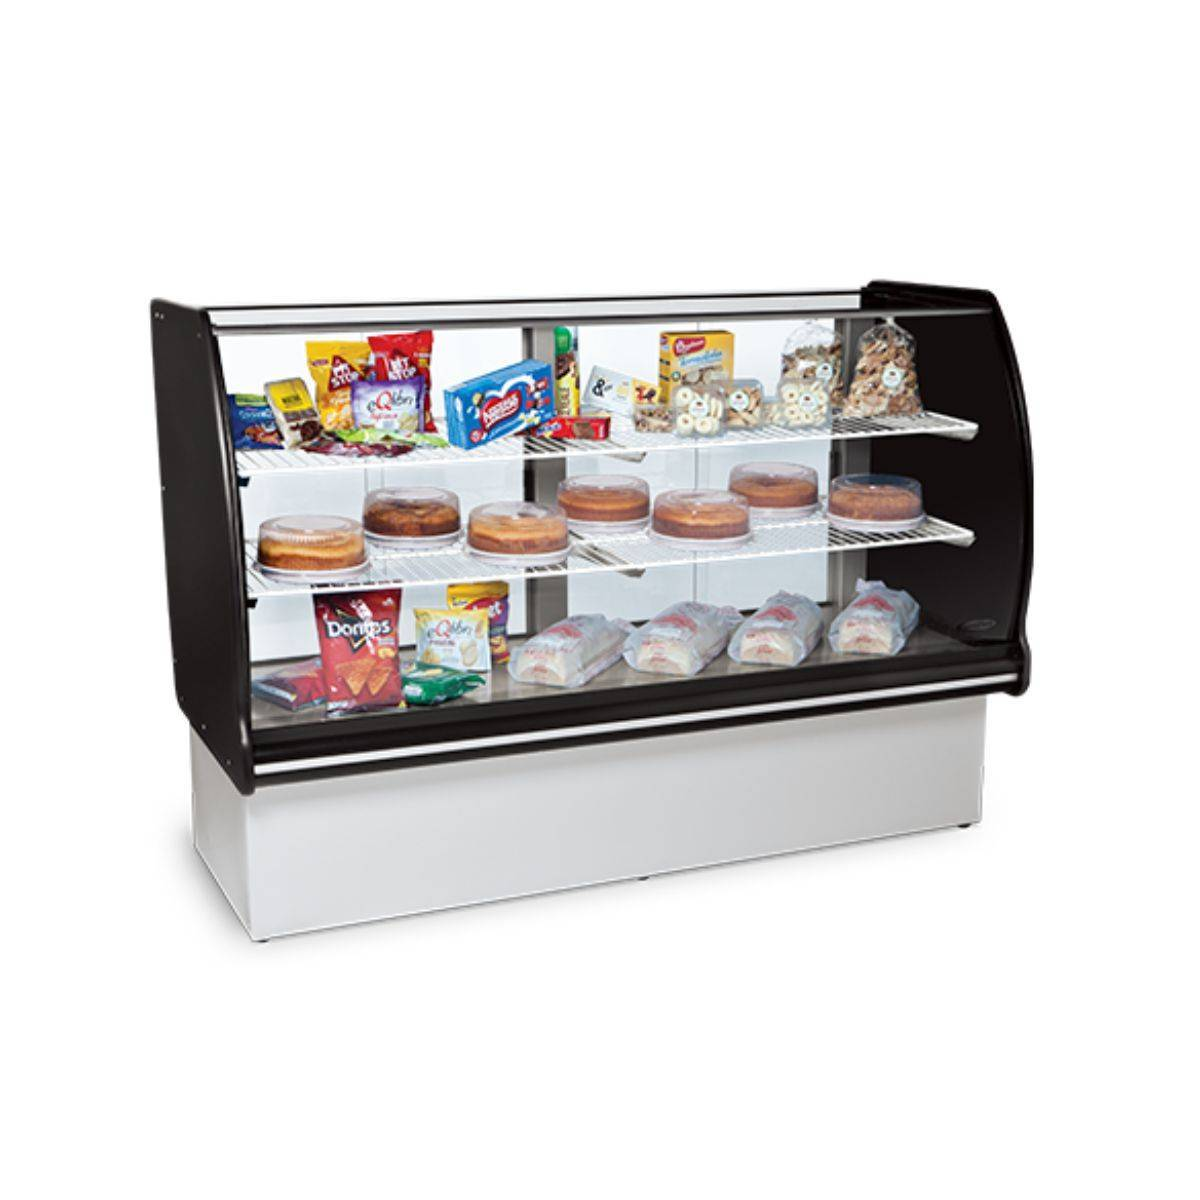 Vitrine Seca 1,10m VSP-110 Conservex - Magazine do Chef